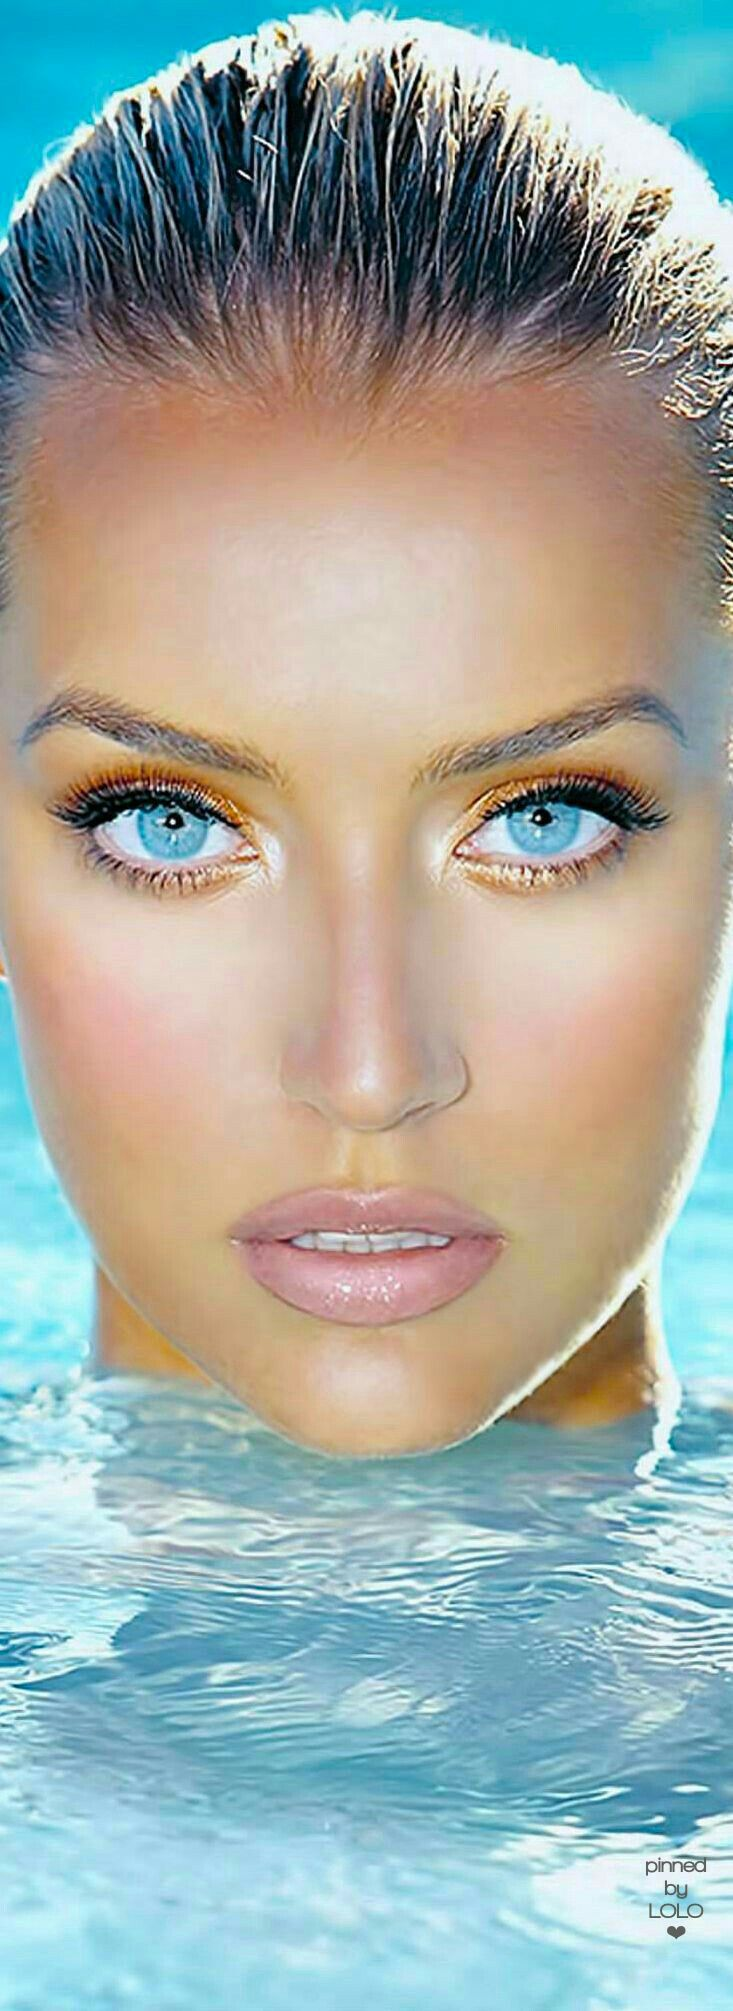 A Beautiful Model With Piercing Blue Eyes I Like This Models Eyes Truly Sky Blue I Don T Think They R Contacts Or Digi Beautiful Eyes Lovely Eyes Pretty Eyes